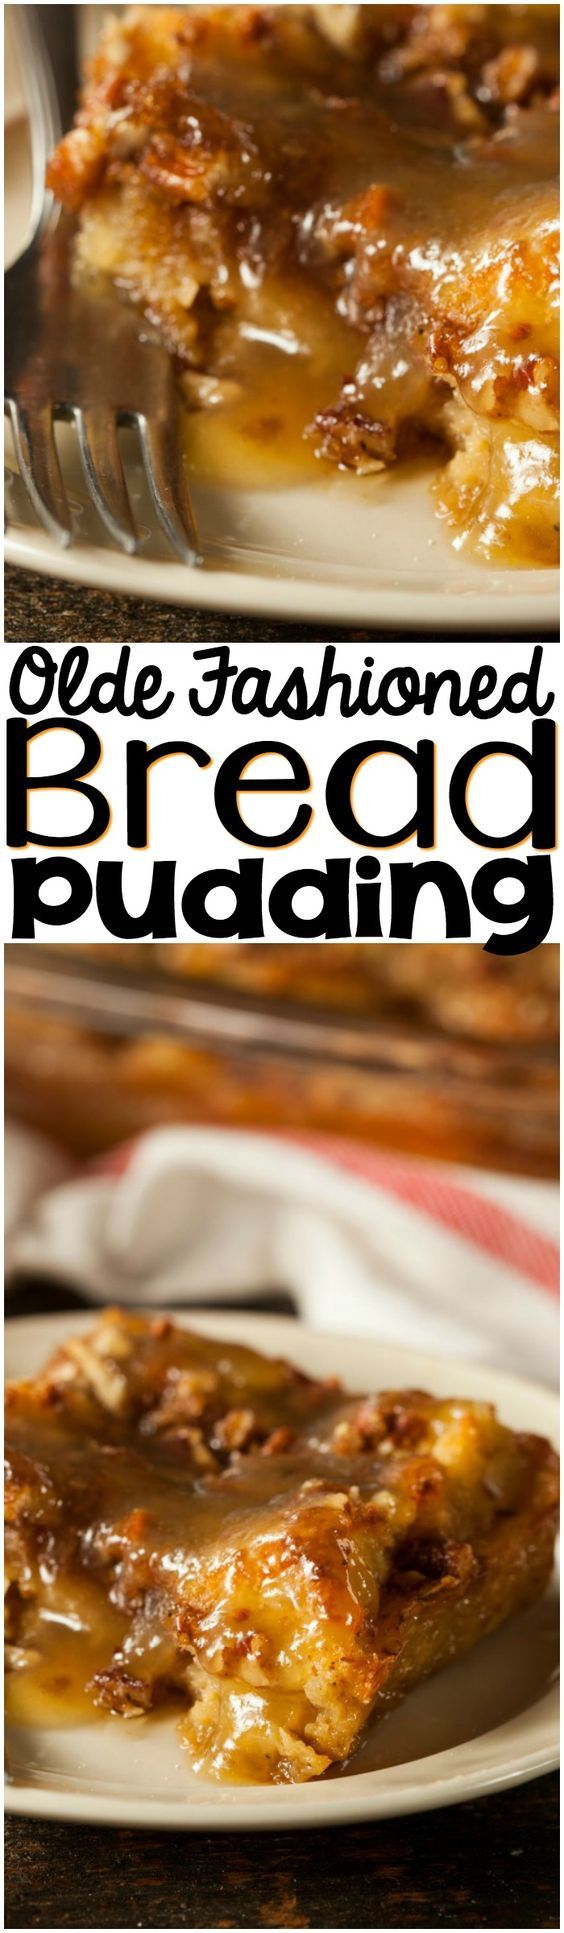 A twist on a traditional recipe, this Old Fashioned Bread Pudding with Rum Sauce is to die for!   #recipe #traditional #breadpudding #rum #sauce #dessert #easy